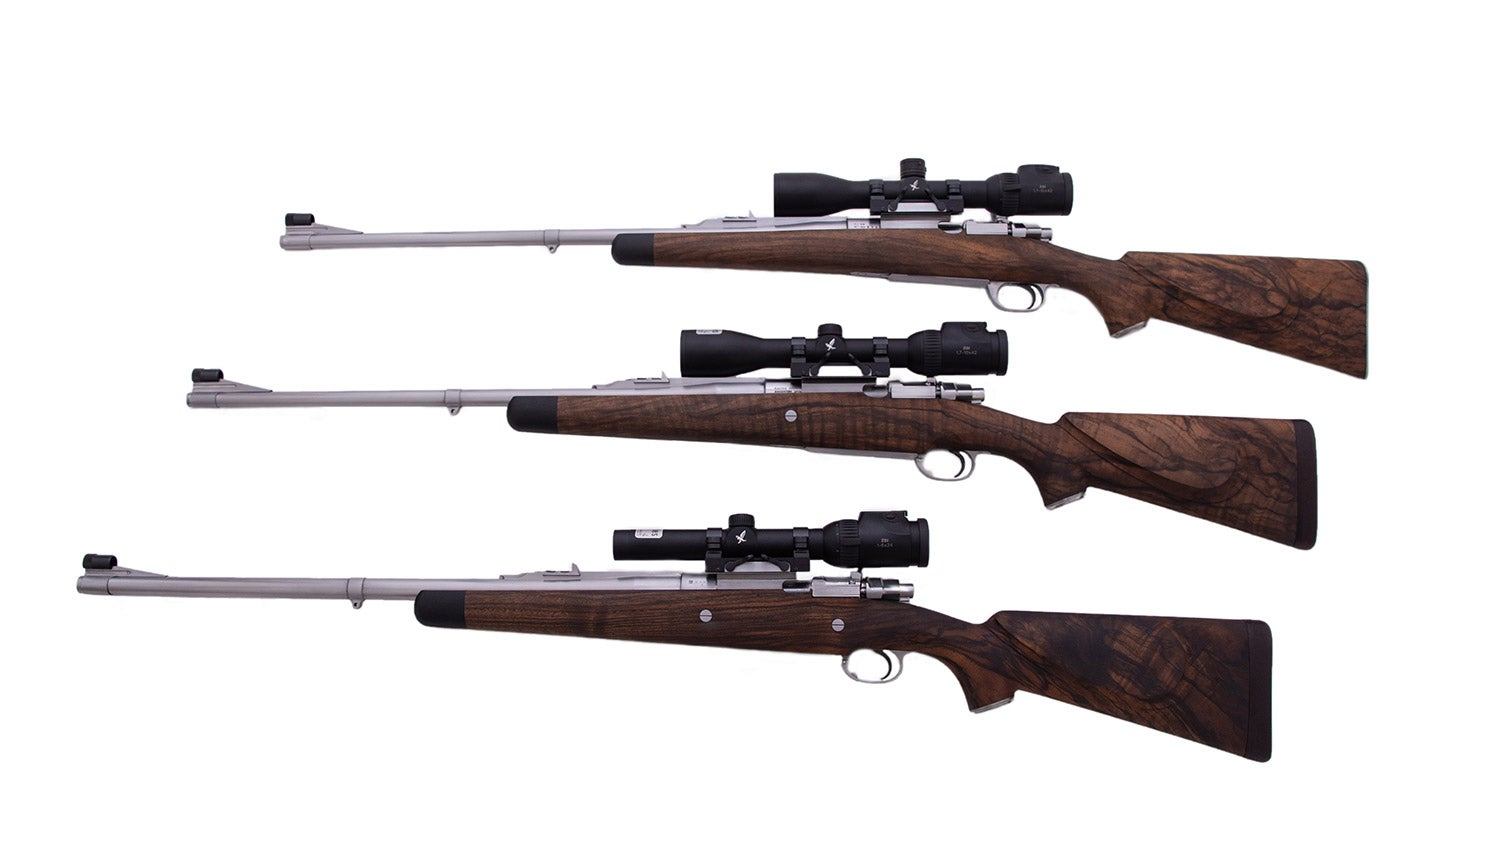 Three rifles on a white background.